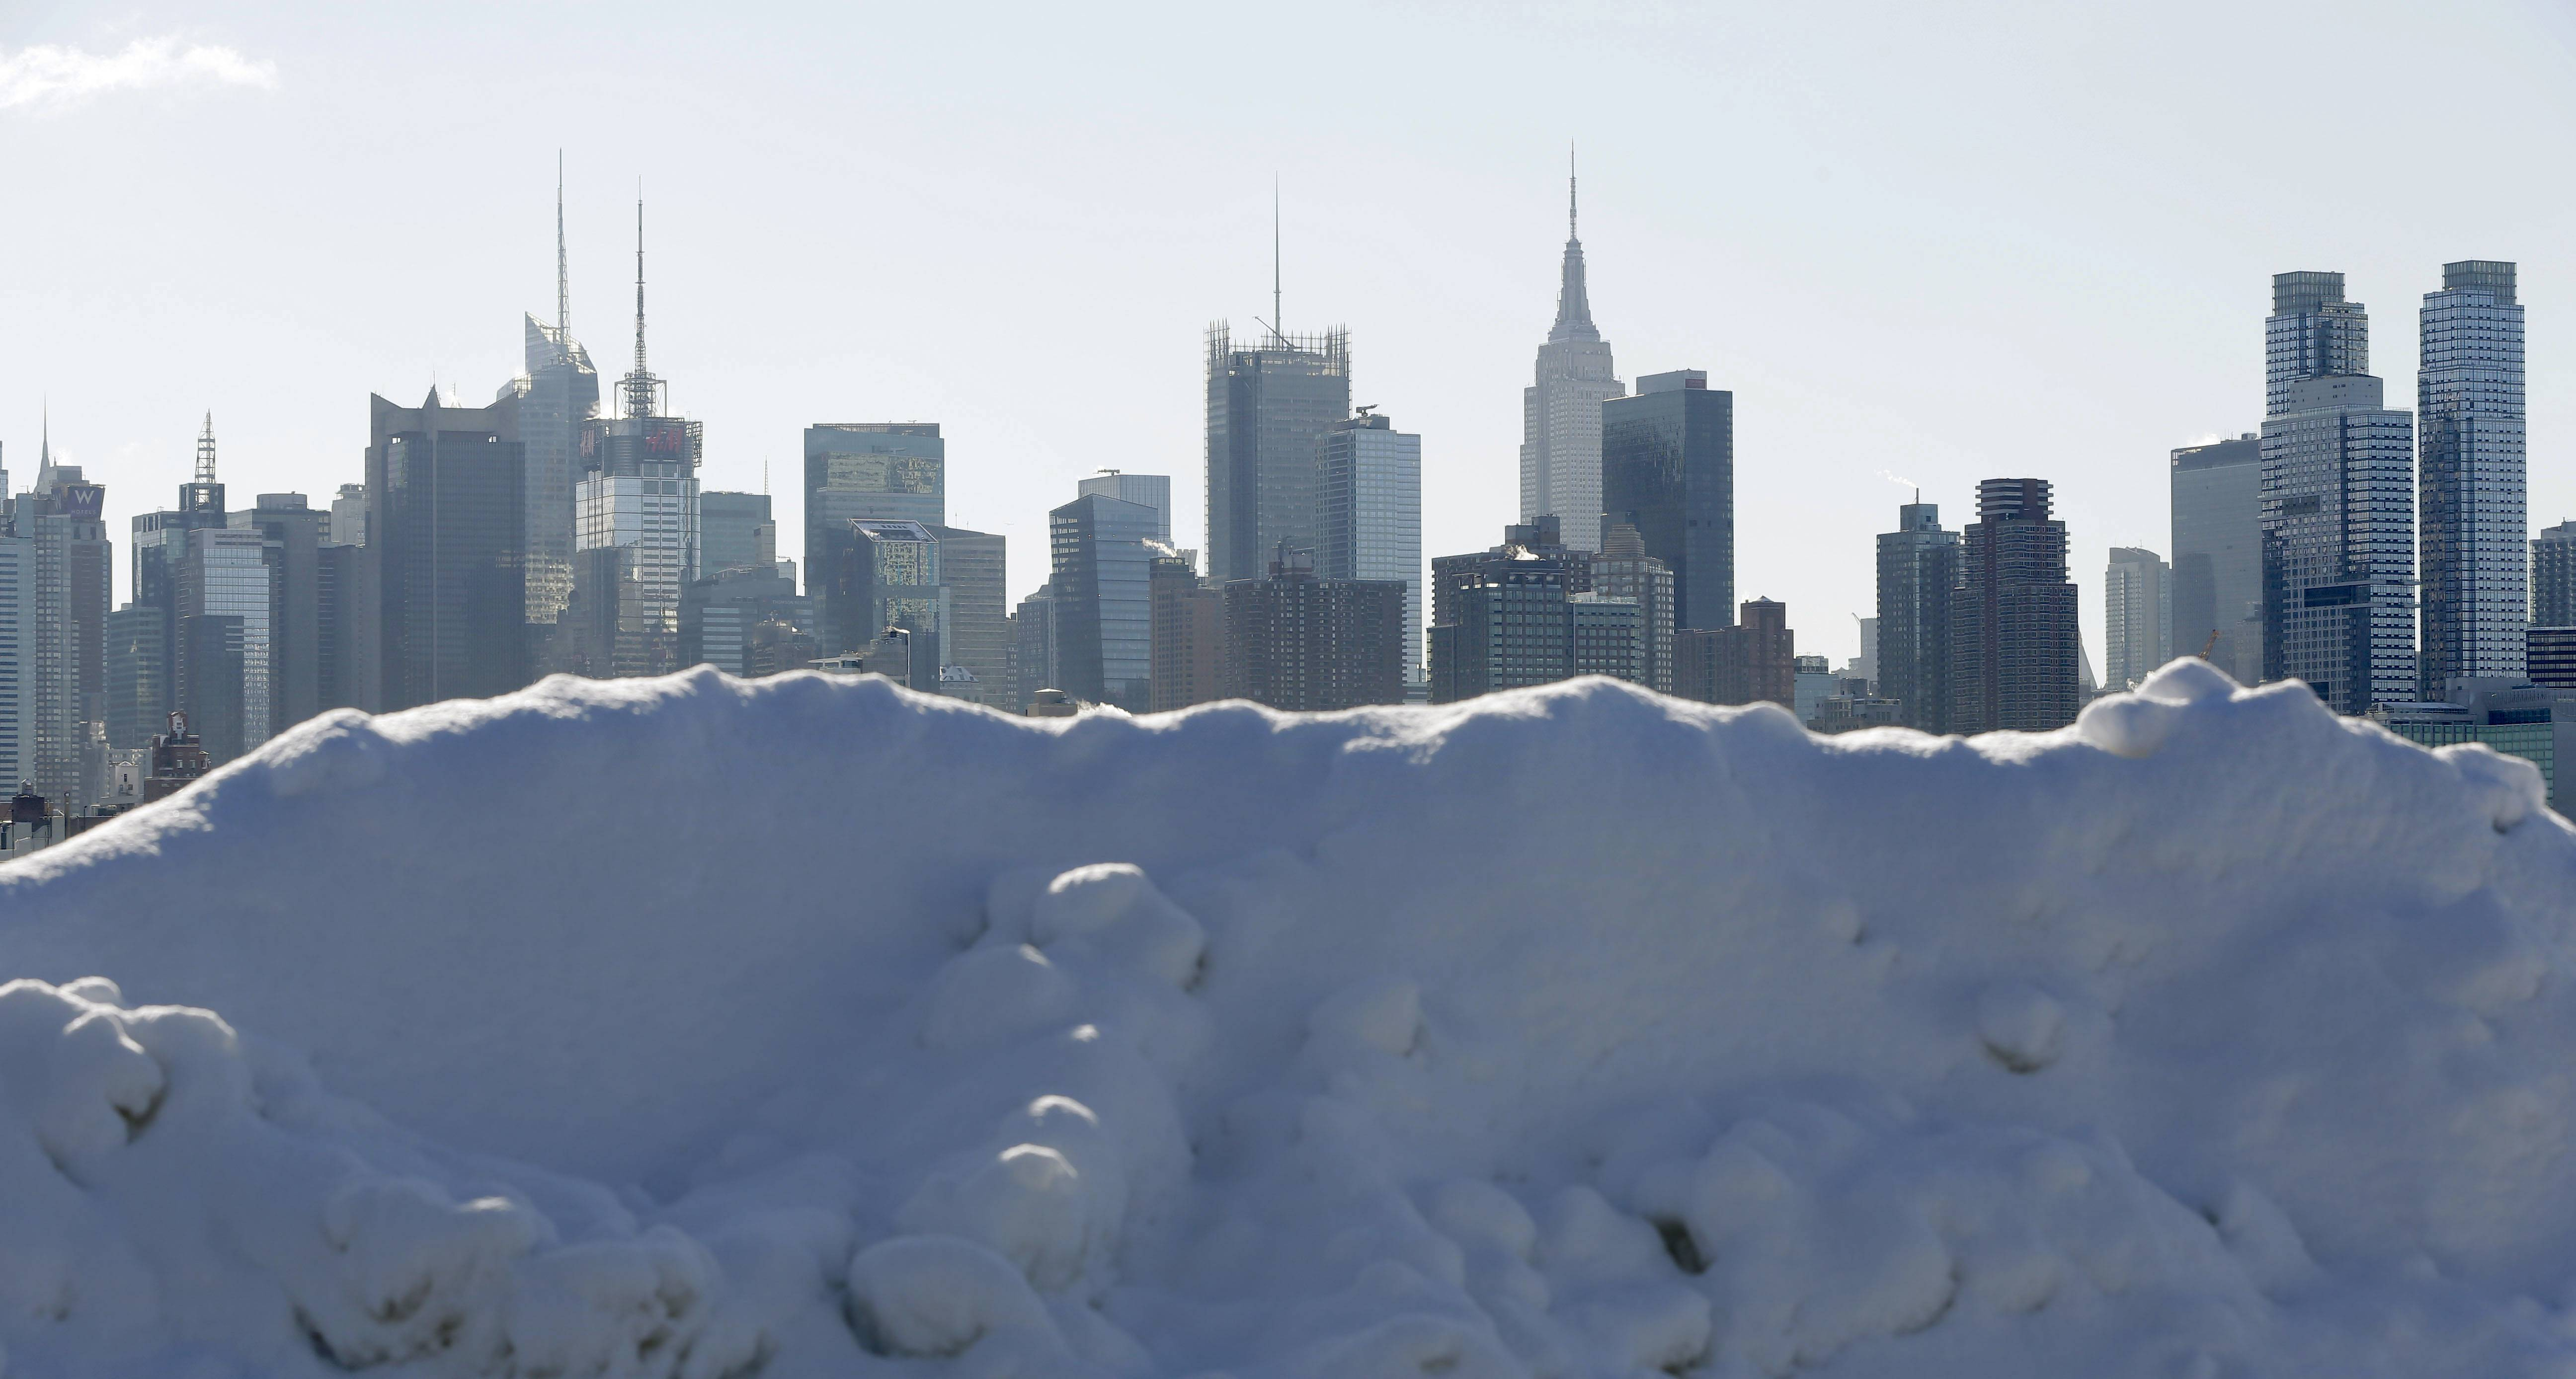 Piles of snow line the waterfront overlooking the New York City skyline in Weehawken, N.J., Friday, Feb. 14, 2014. Commuters faced slick roads on Friday after yet another winter storm brought snow and ice to the East Coast, leaving at least 24 people dead.